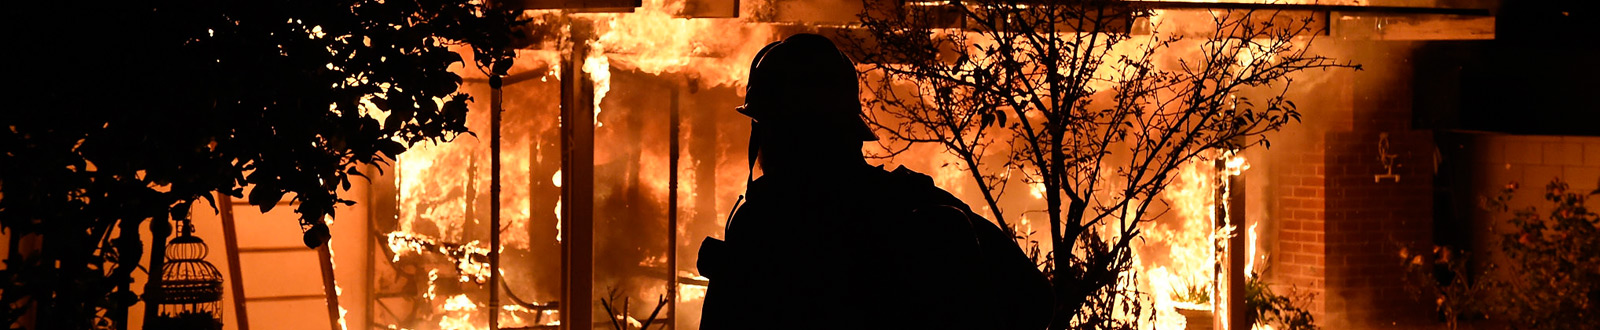 A firefighter silhouetted by a burning house